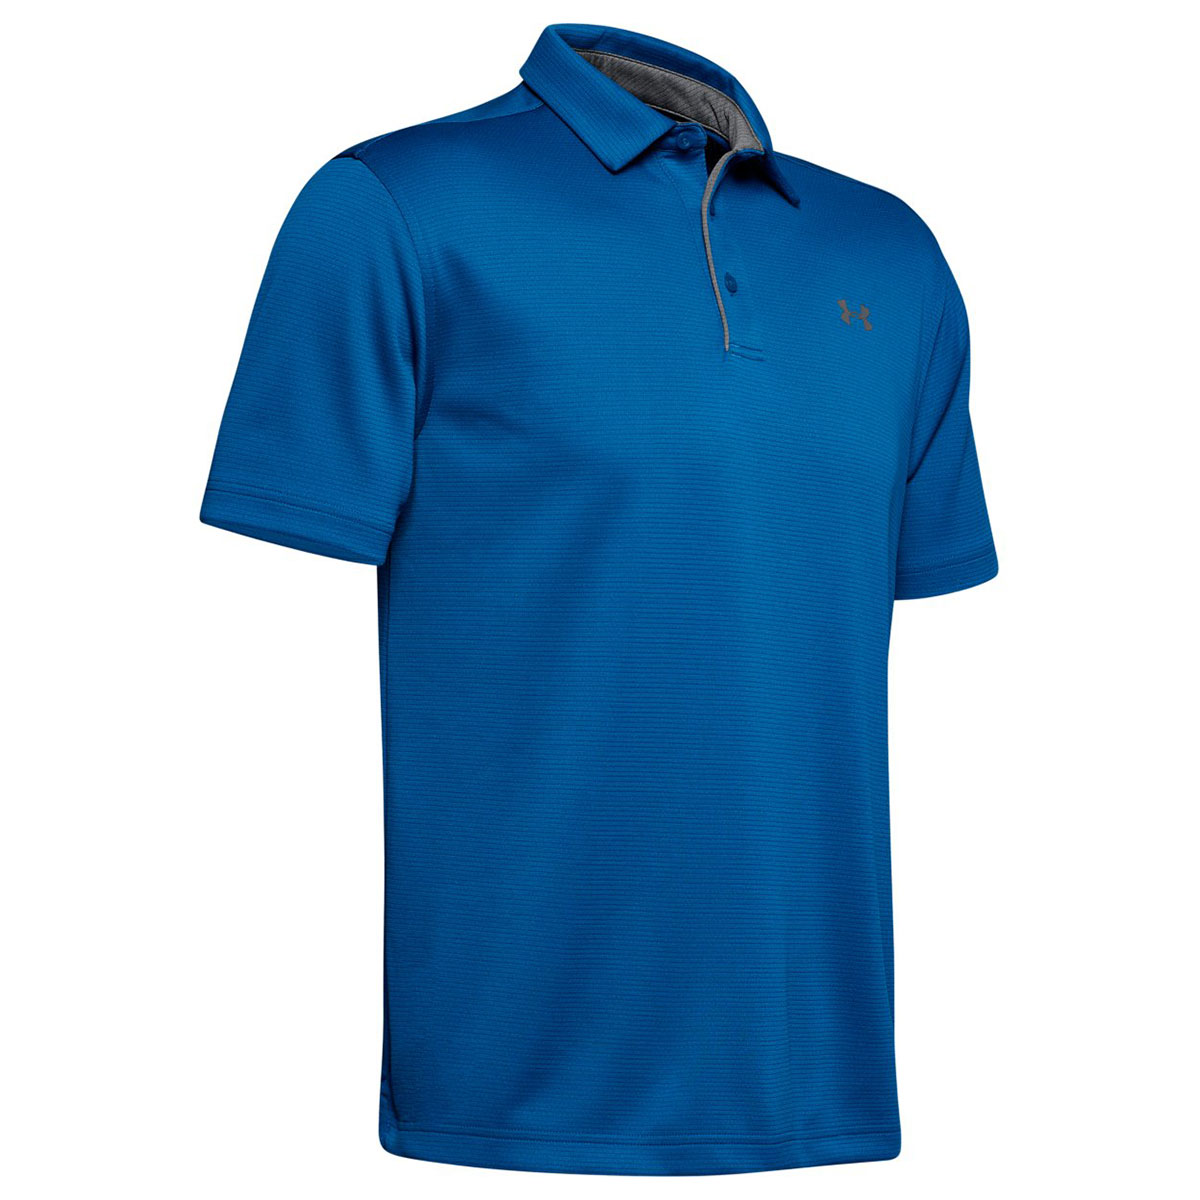 Under-Armour-Mens-Golf-Tech-Wicking-Textured-Soft-Light-Polo-Shirt thumbnail 76